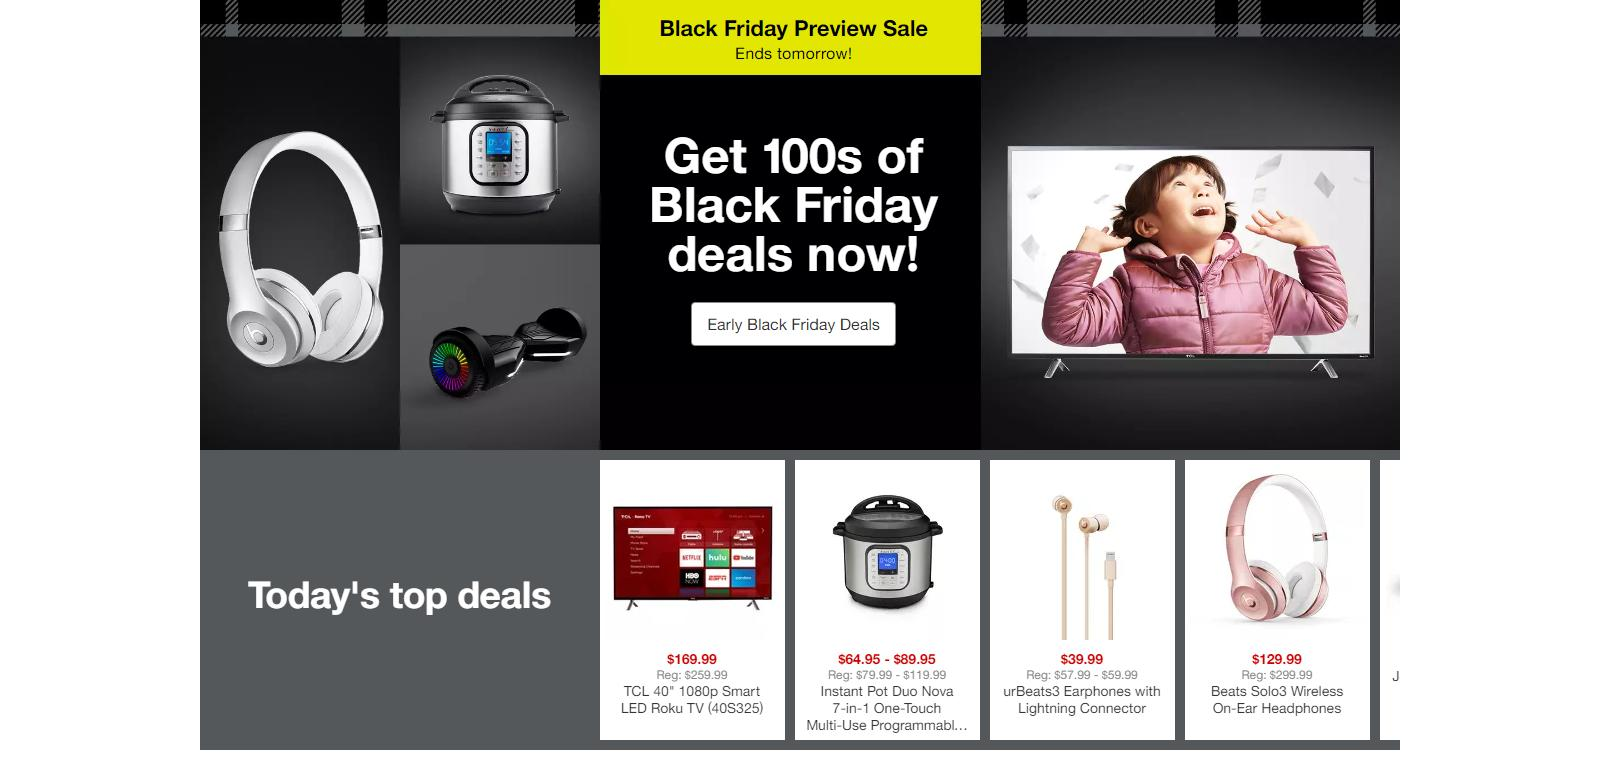 Target Black Friday Preview Sale With Doorbusters Through Nov 9 5 Off Target Gift Cards Wral Com